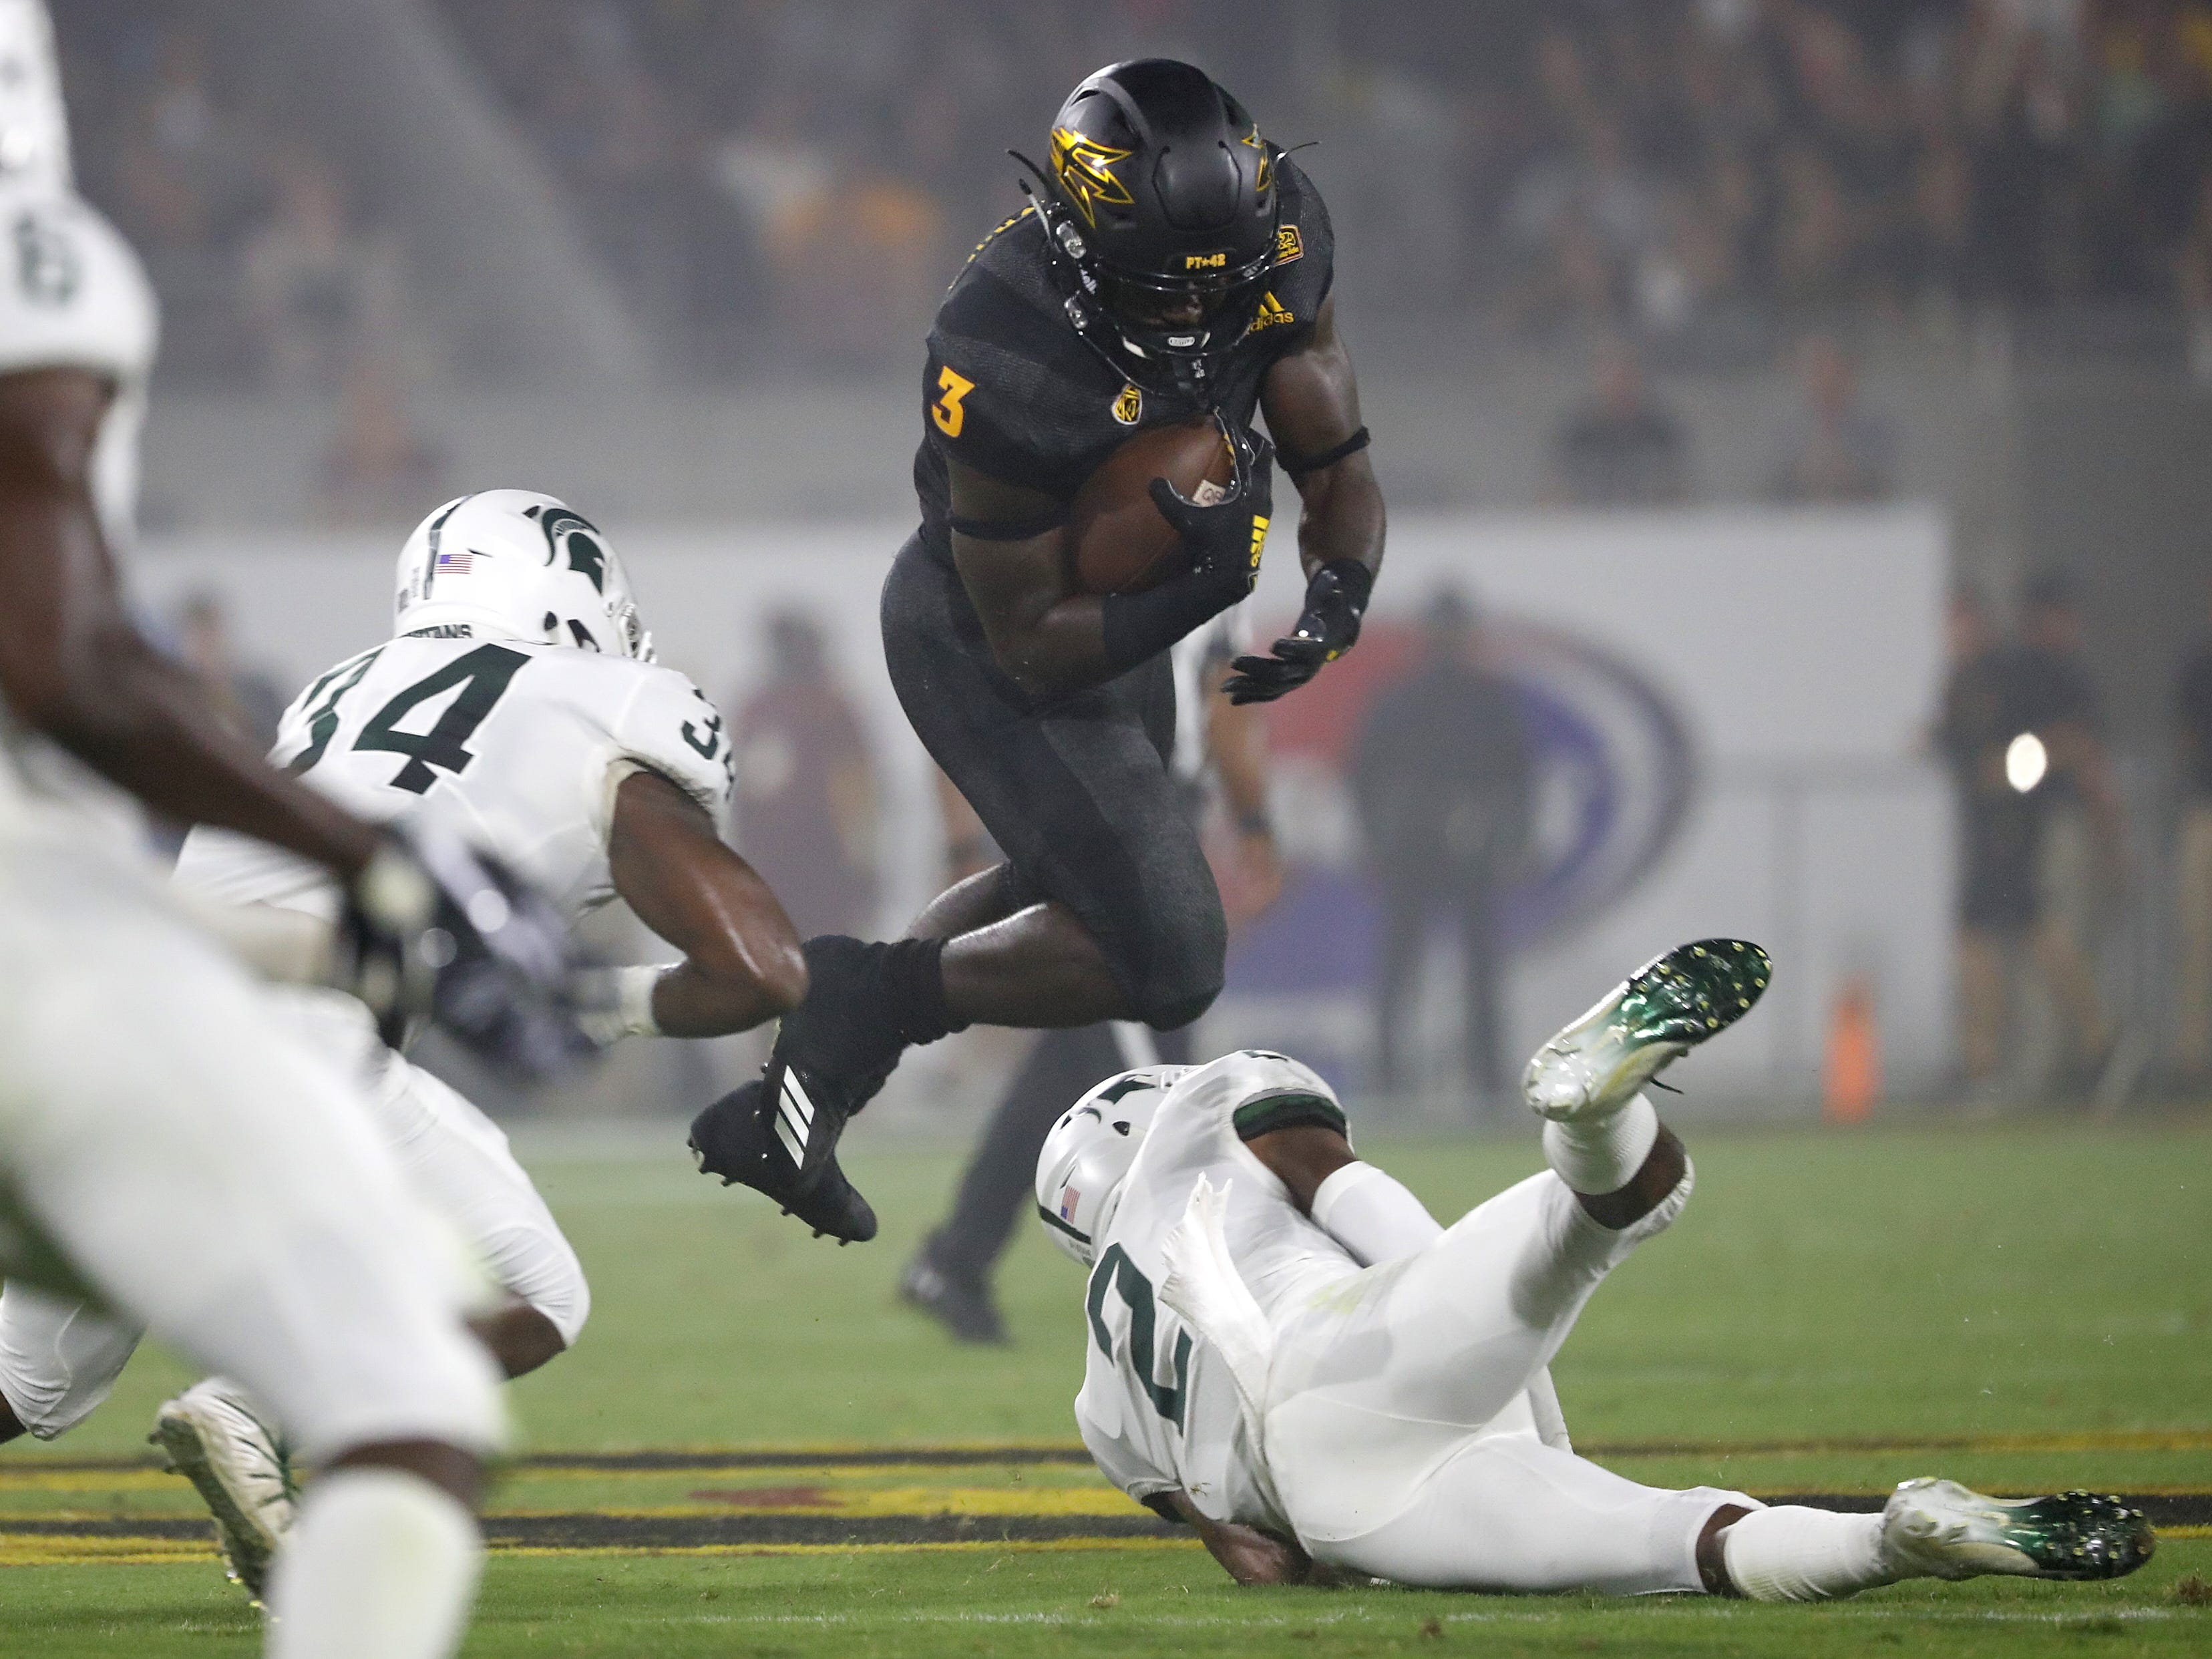 Arizona State Sun Devils running back Eno Benjamin (3) tries to hurdle a tackle from Michigan Justin Layne (2) during the first quarter at Sun Devil Stadium in Tempe, Ariz. on Sept. 8, 2018.